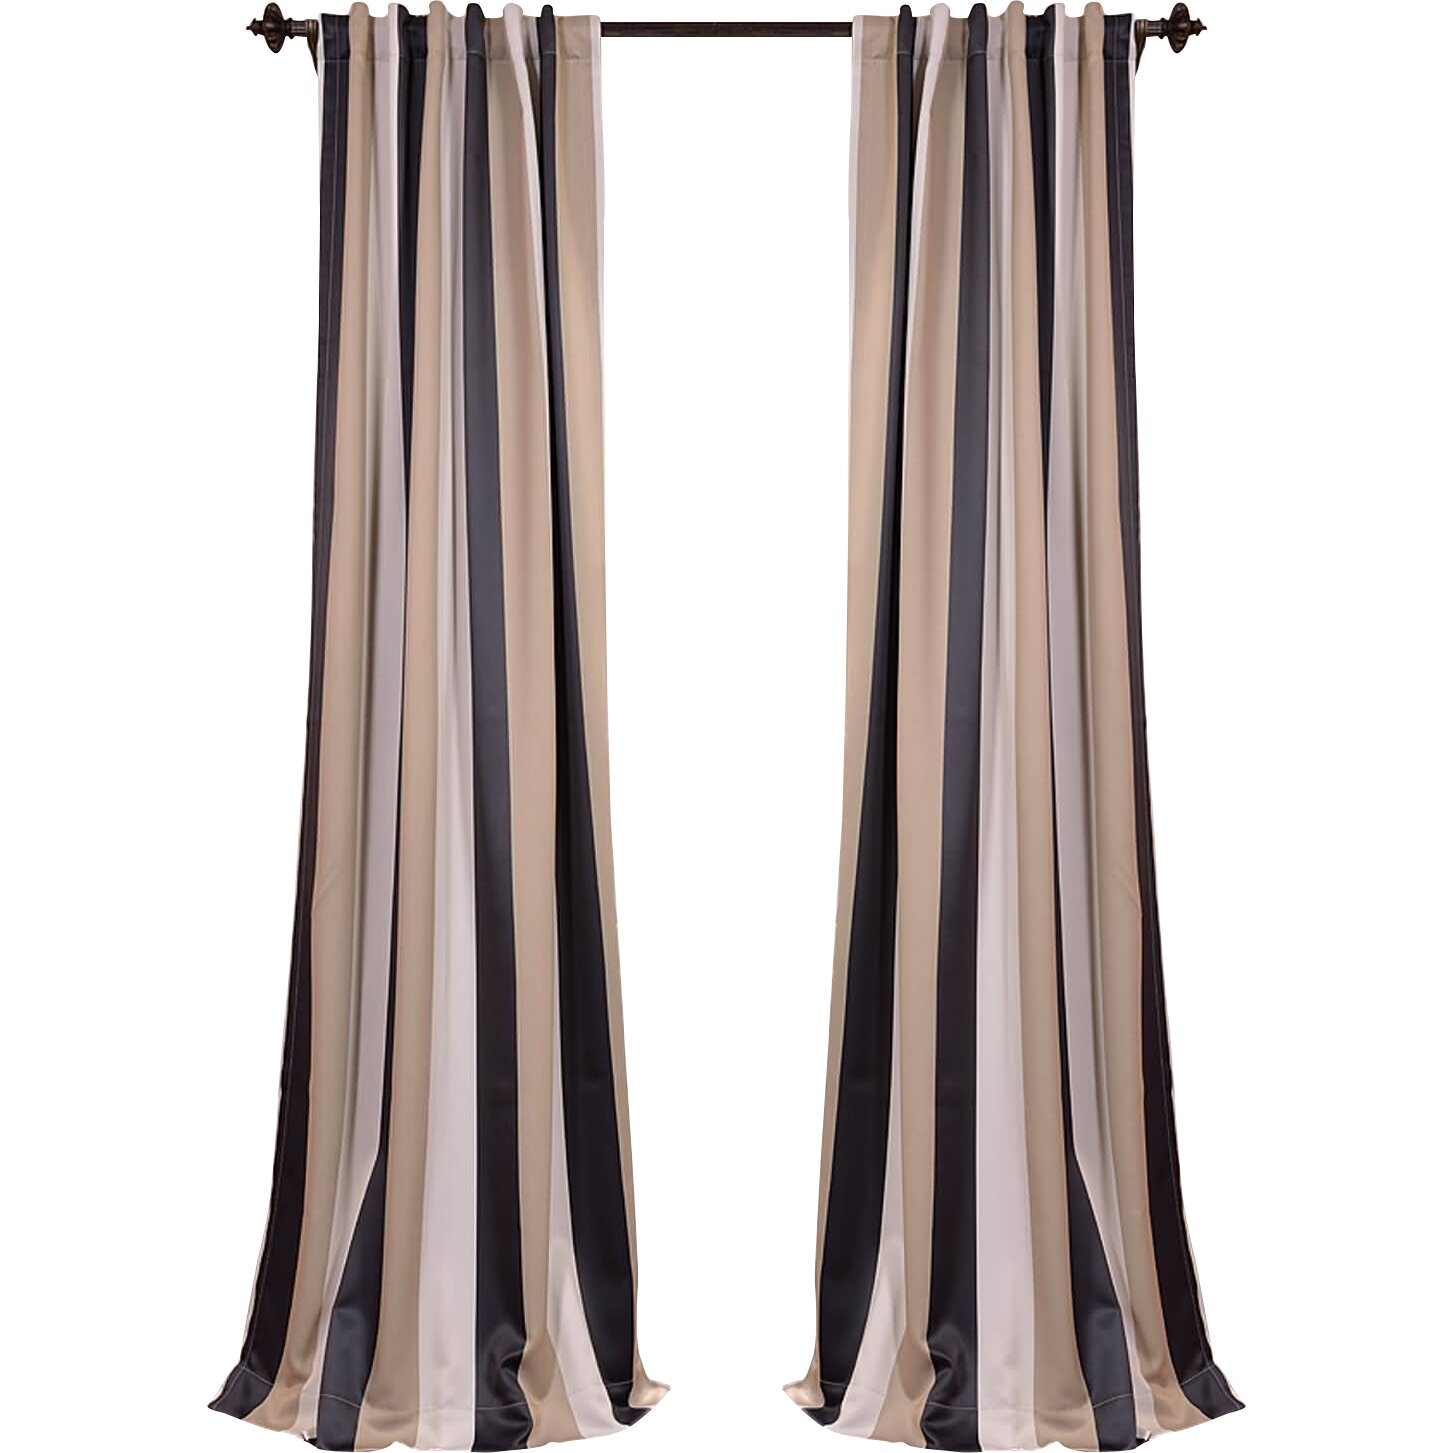 Half Price Drapes Georgetown Striped Blackout Thermal Rod